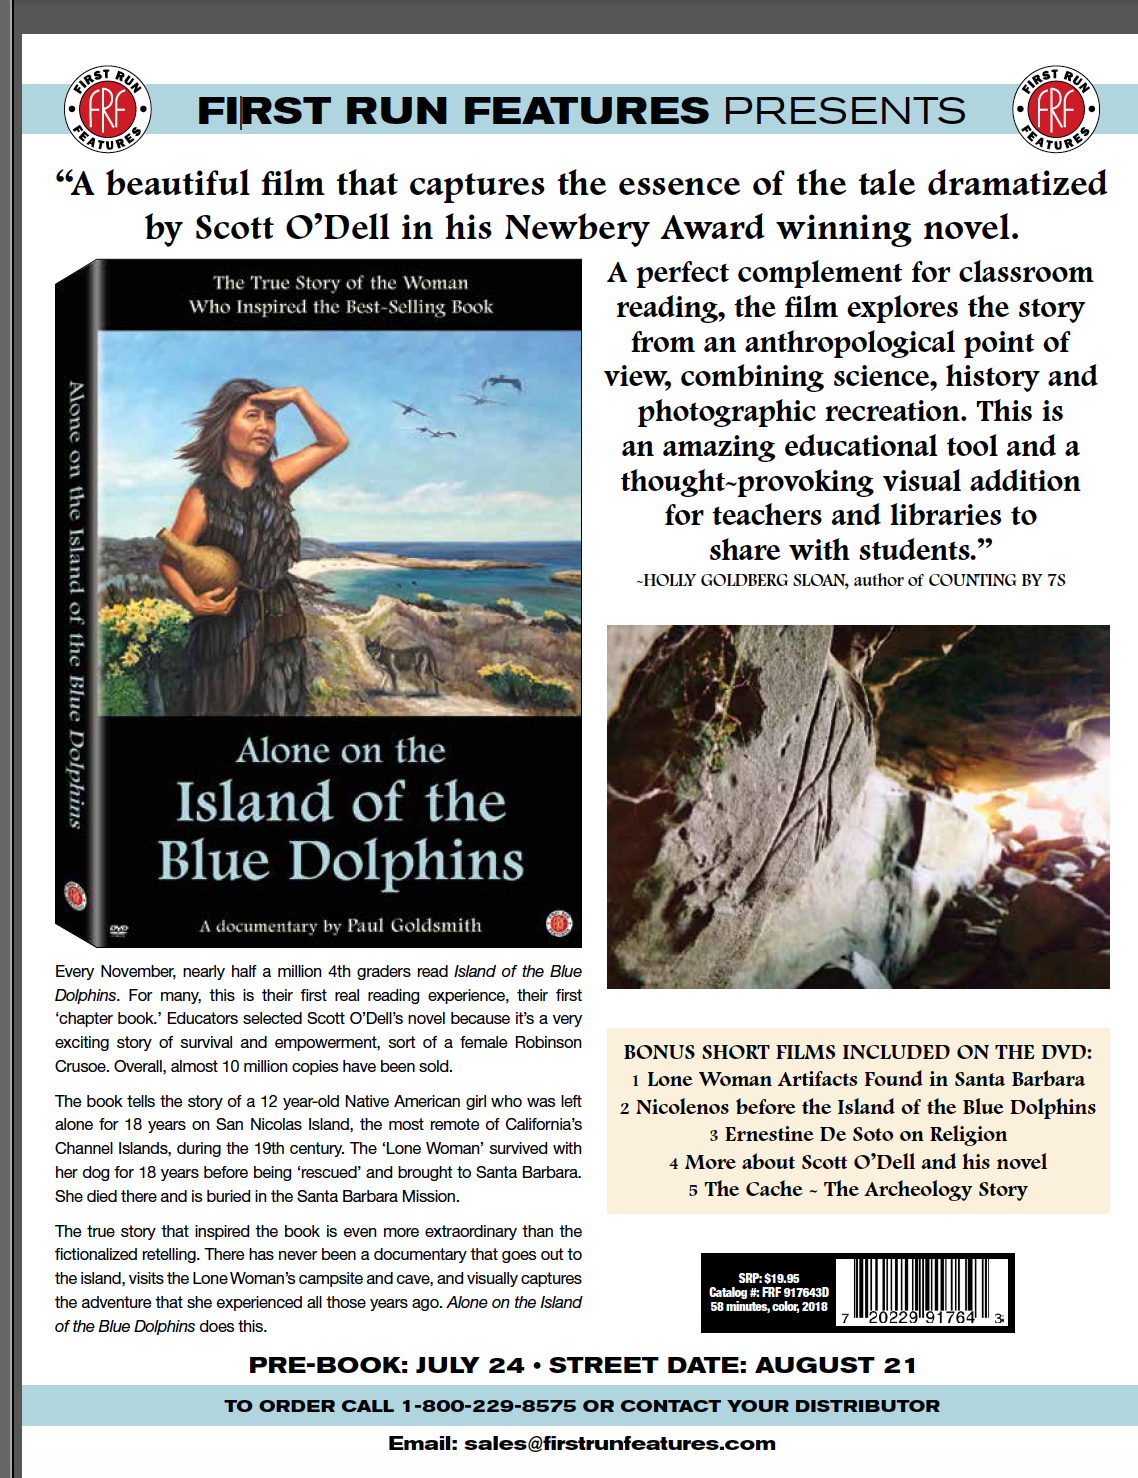 JPEG ALONE ON THE ISLAND OF THE BLUE DOLPHINS.jpg